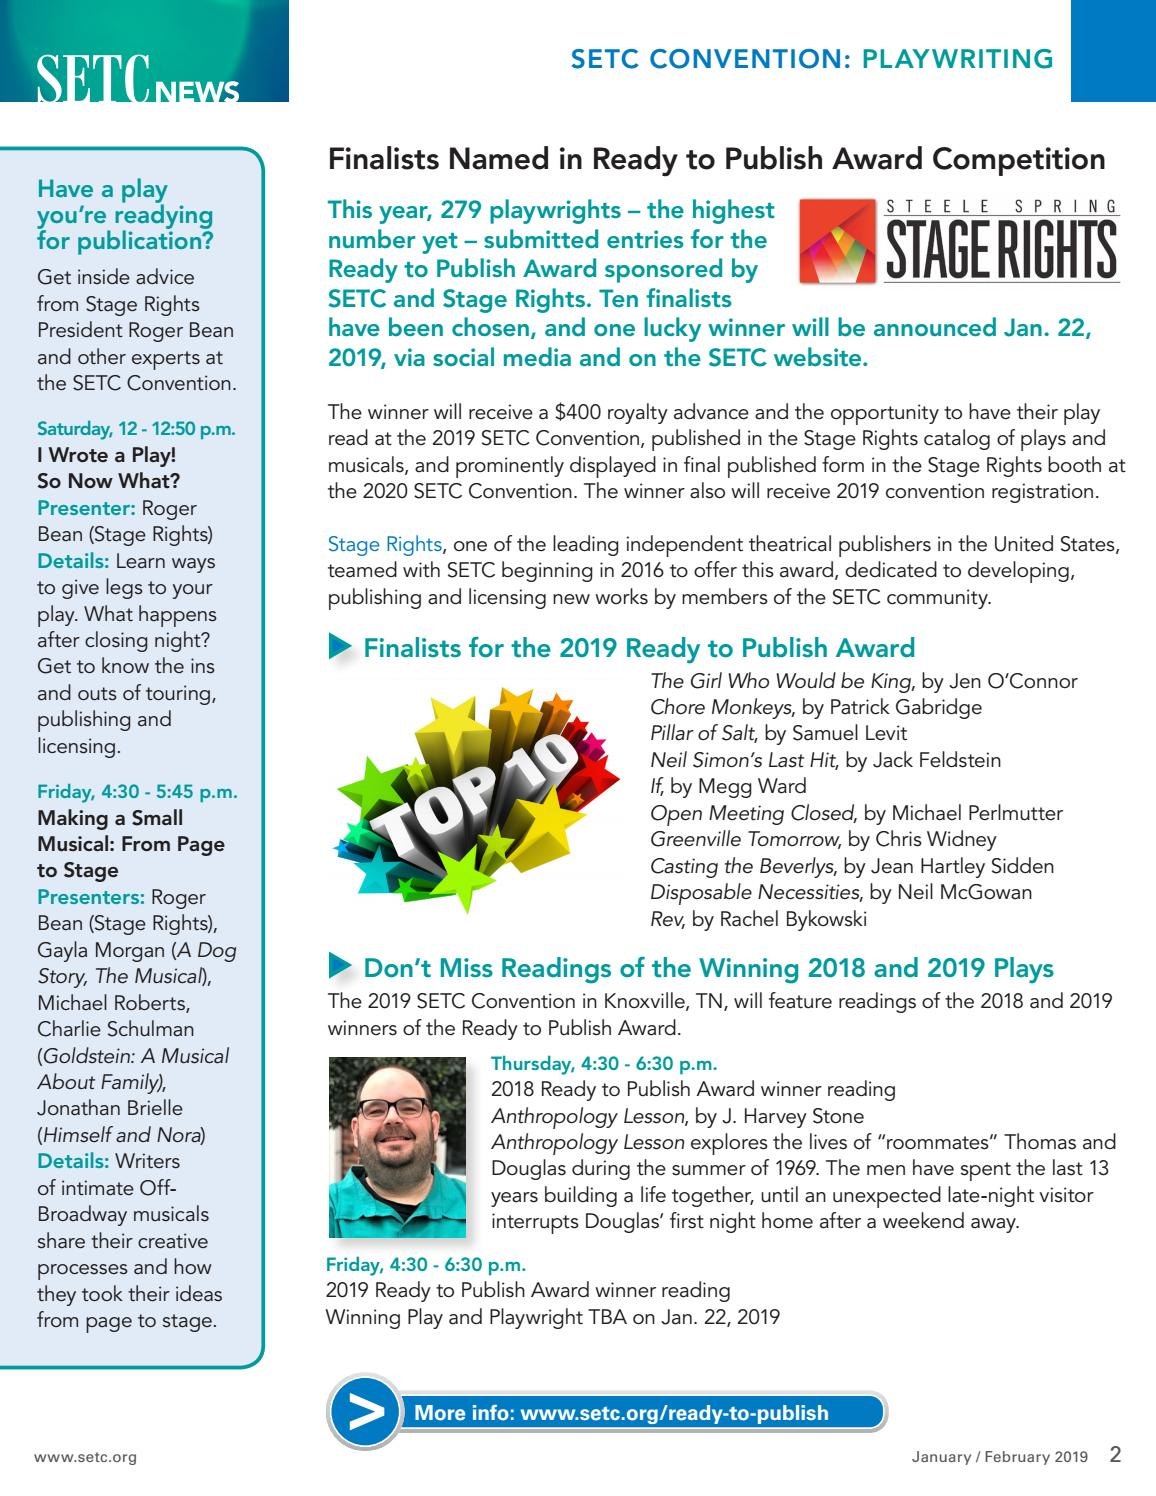 SETC News January/February 2019 by Southeastern Theatre Conference